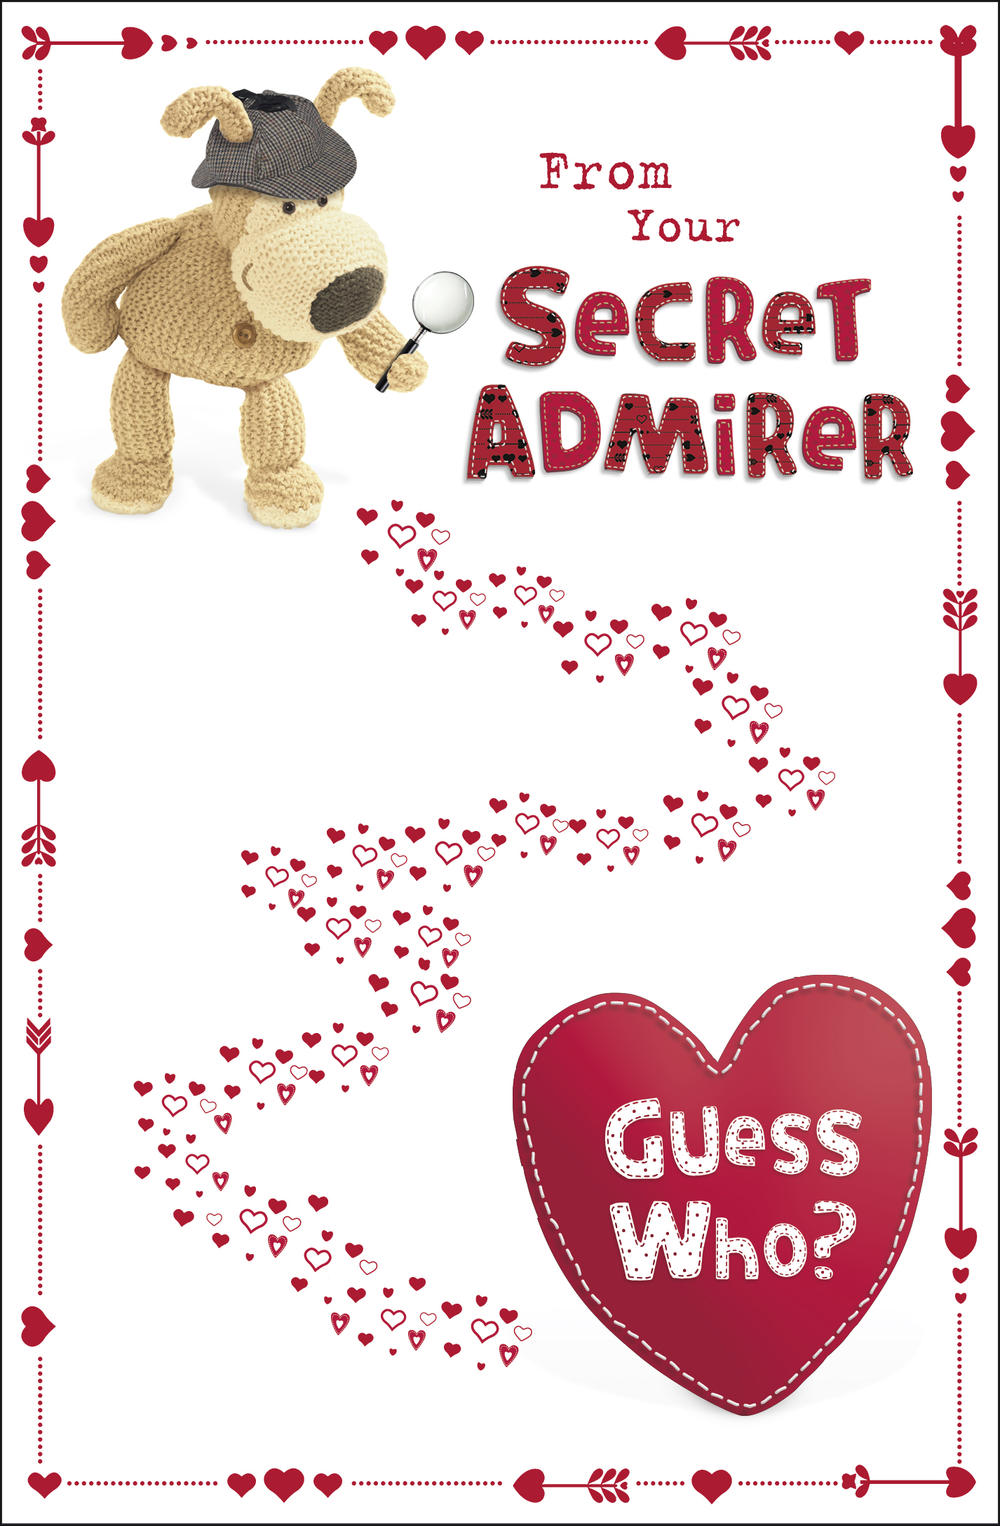 Boofle From Your Secret Admirer Valentine's Day Card